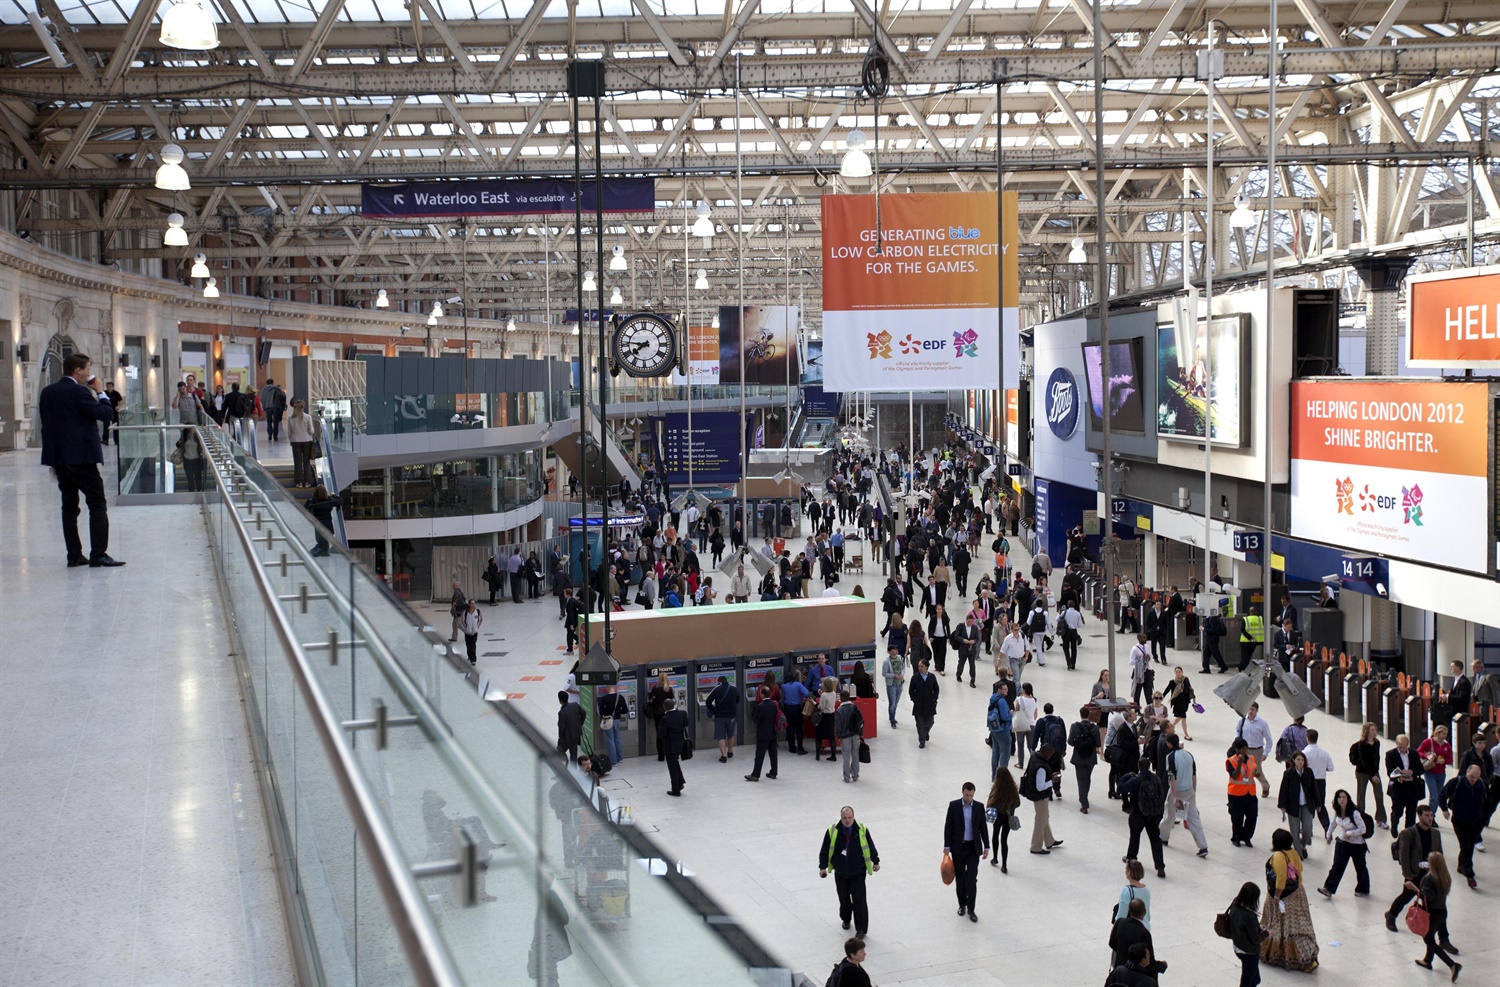 First major changes to Waterloo station since the 1930s